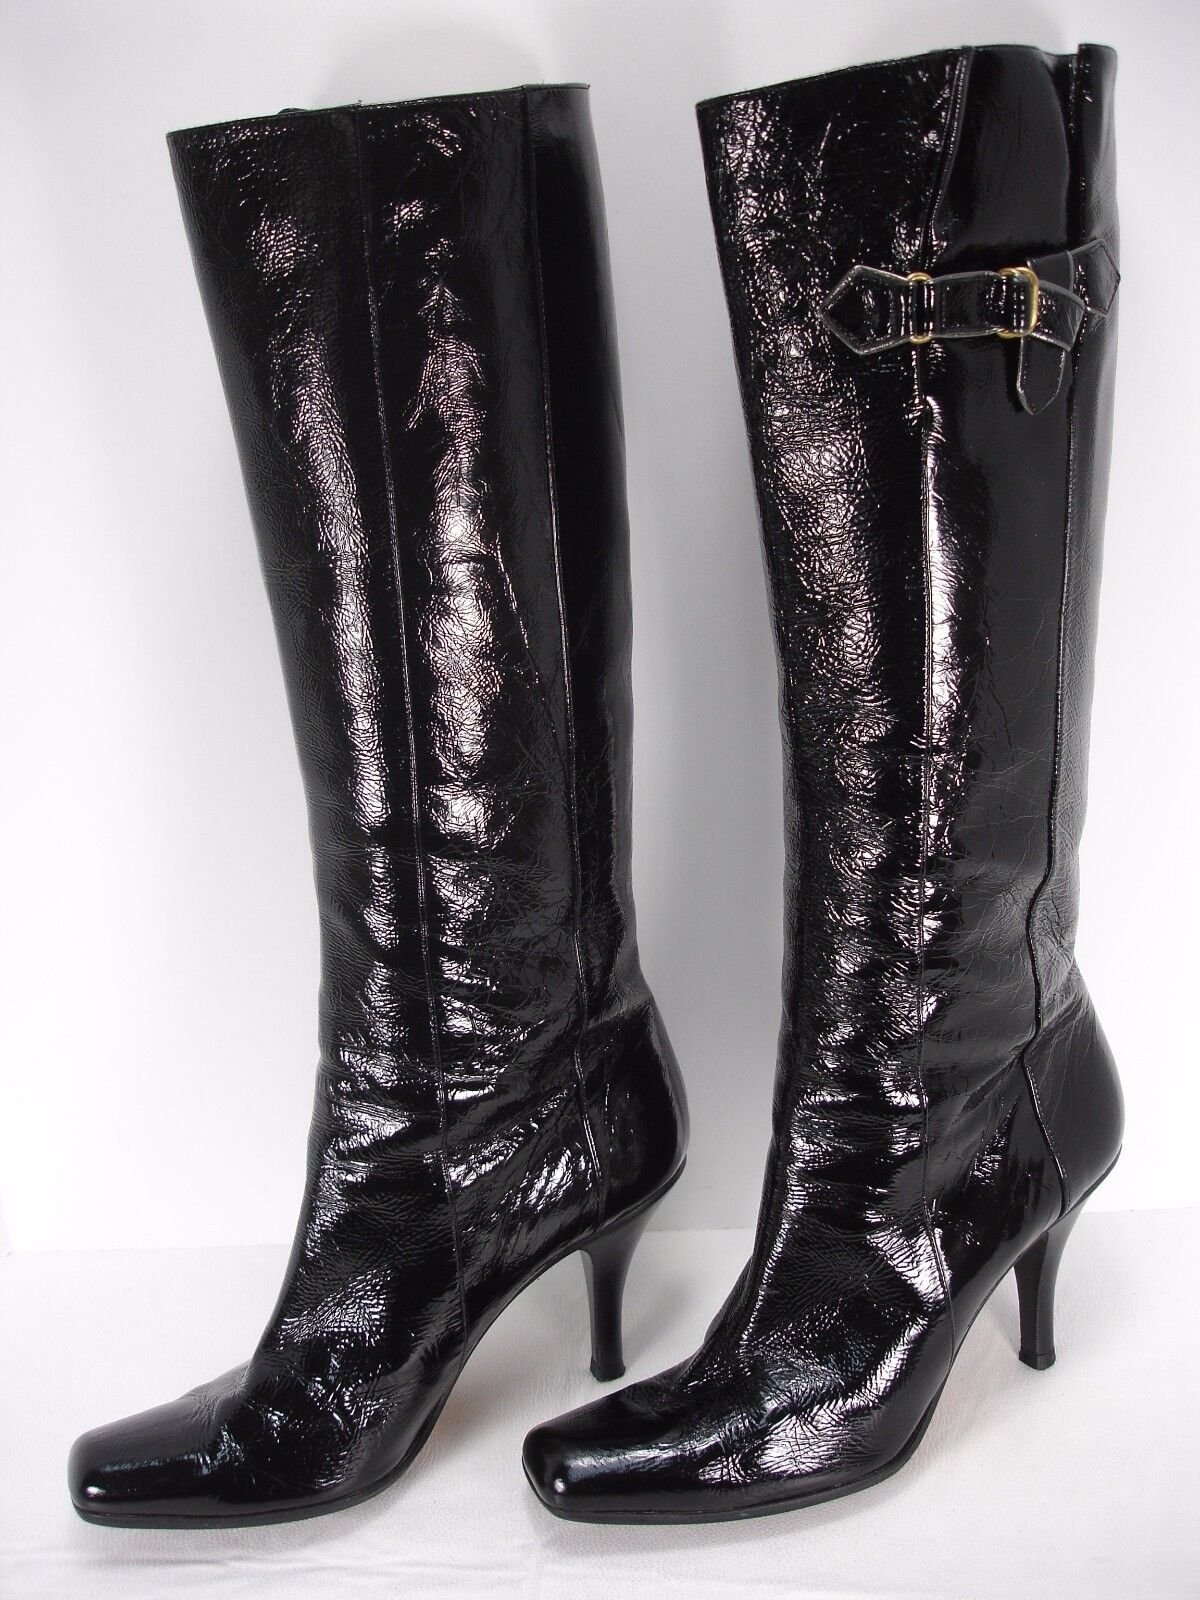 JIMMY CHOO BLACK PATENT LEATHER PULL ON SQUARE TOE KNEE HIGH BOOTS WOMEN'S 40